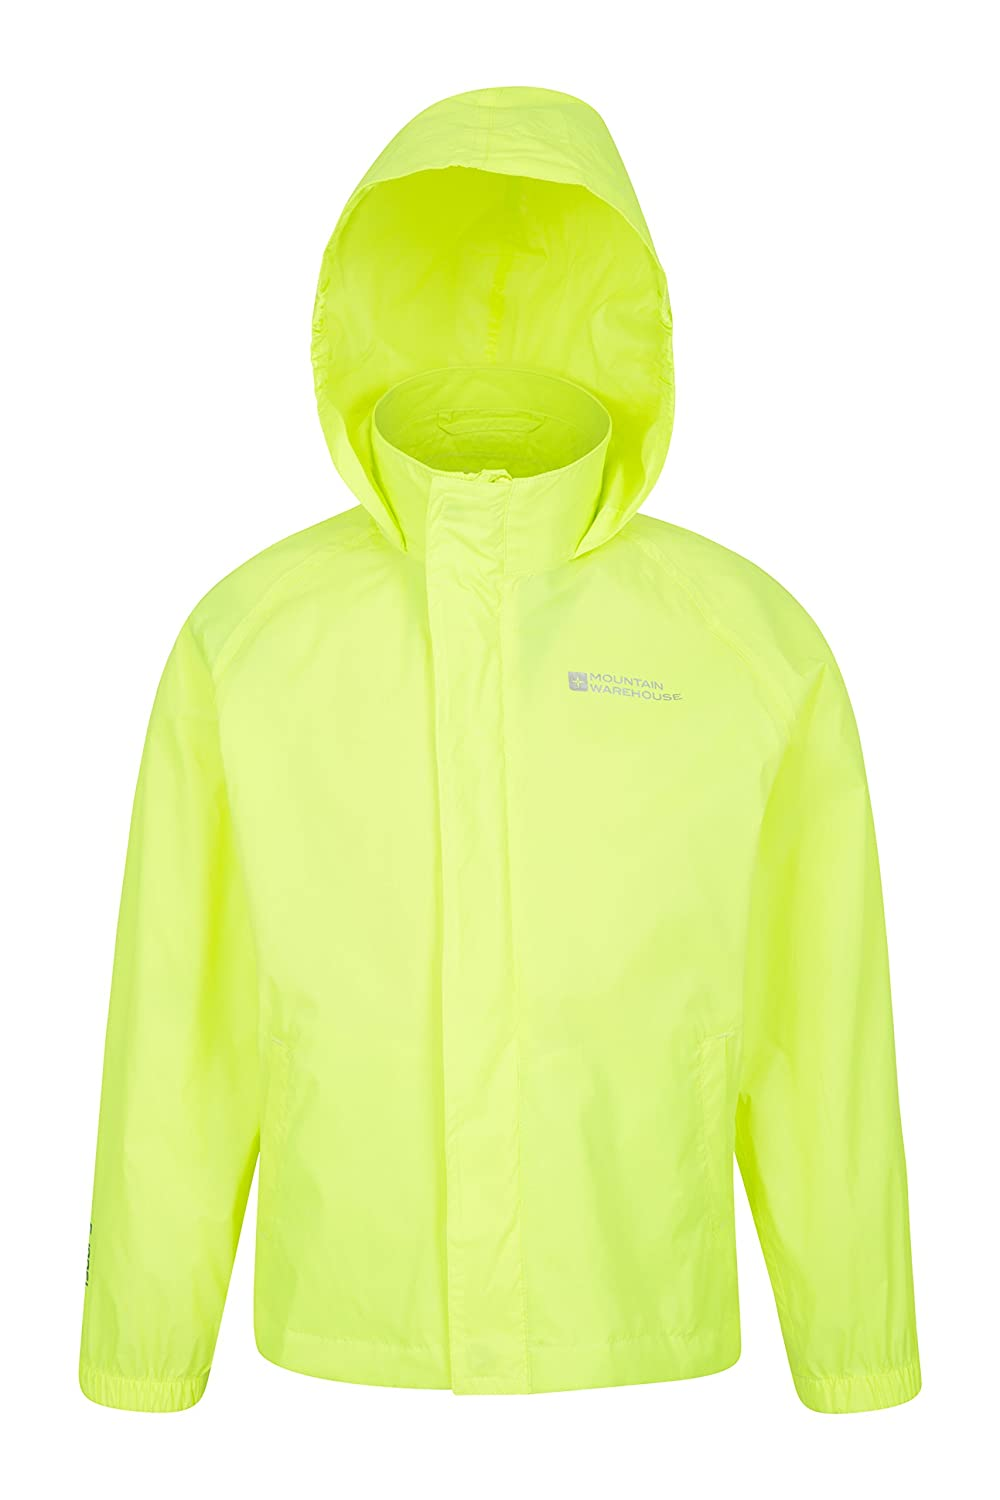 499ce3b7c The Pakka Kids Waterproof Jacket is a lightweight, breathable, packable and  highly compact piece to keep close to hand when outdoors in bad weather.